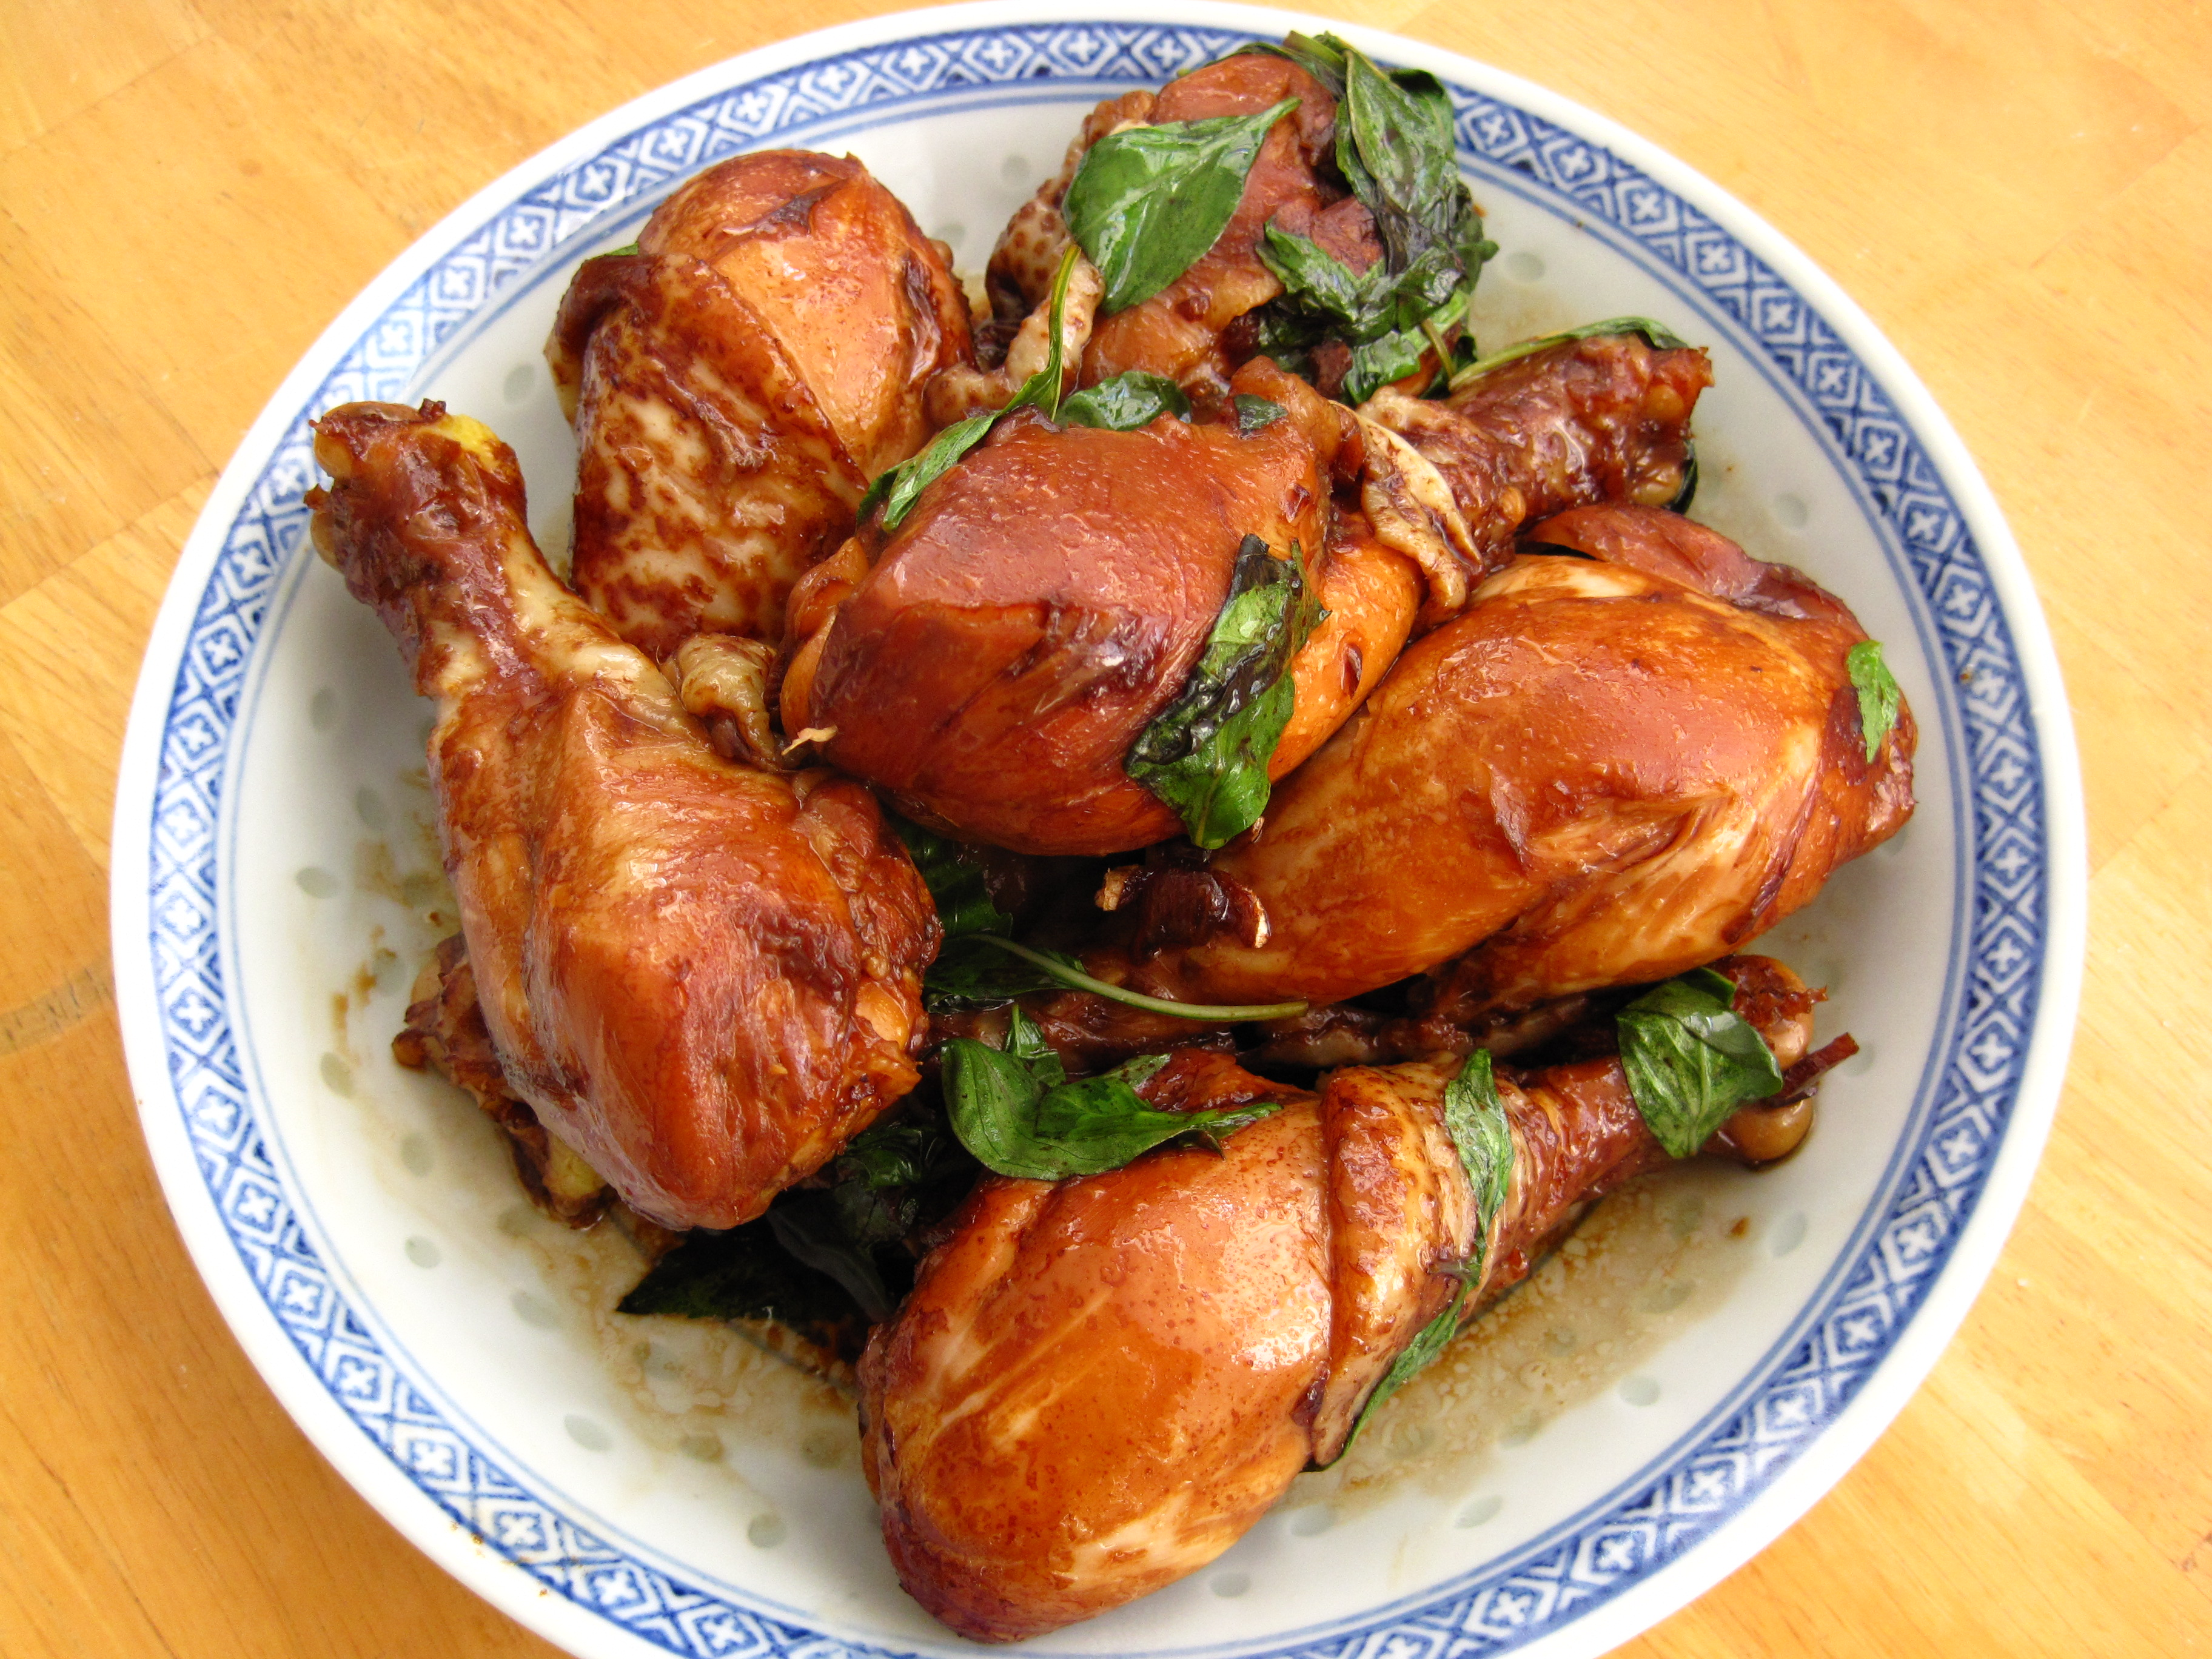 Chicken recipes for dinner in urdu in urdu by chef zakir filipino great chicken recipes for dinner in urdu in urdu by chef zakir filipino pinoy pakistani for kids in hindi asain chines photos forumfinder Gallery